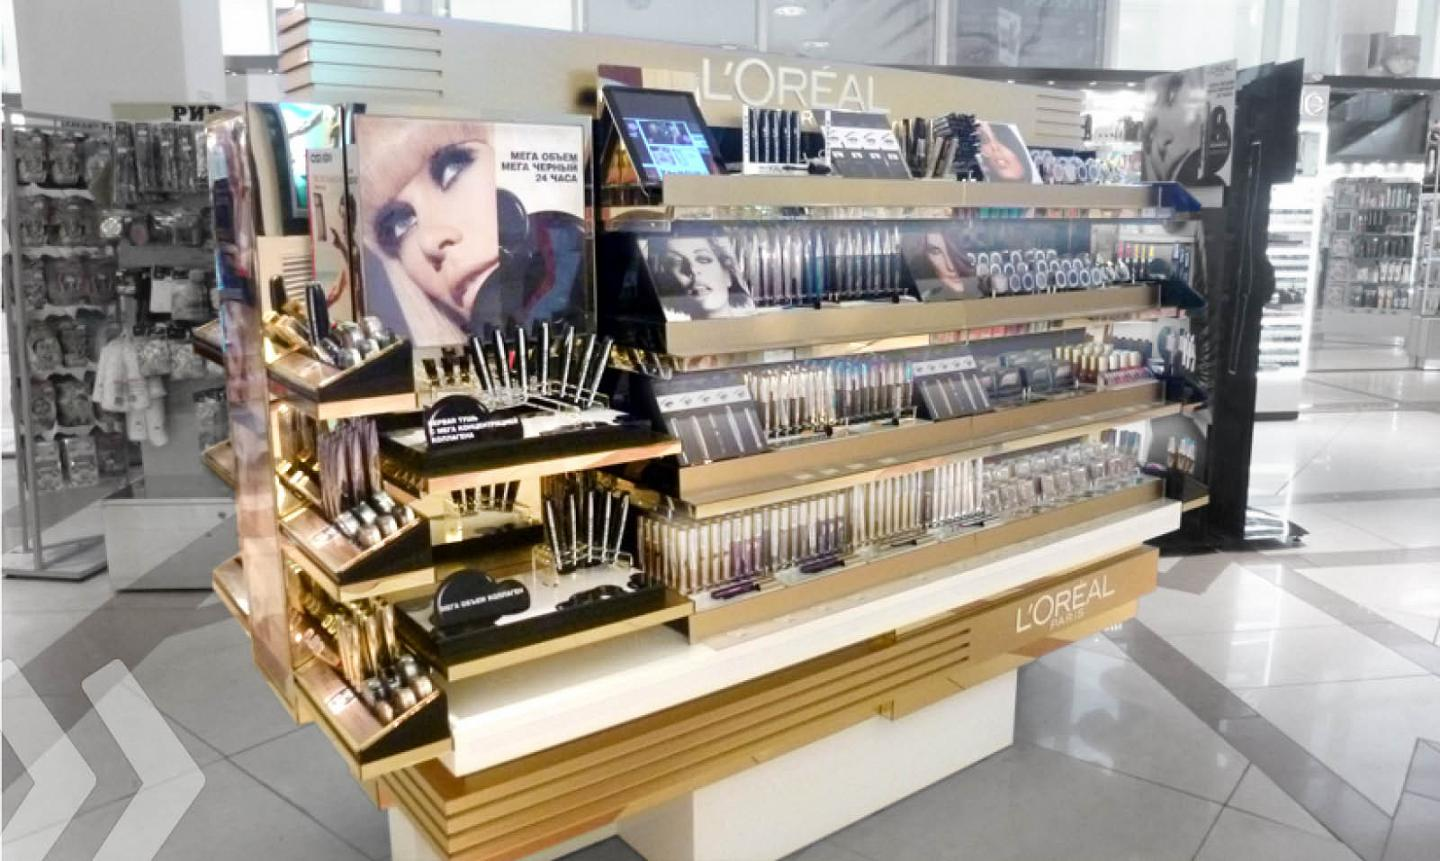 L'Oréal Display 3